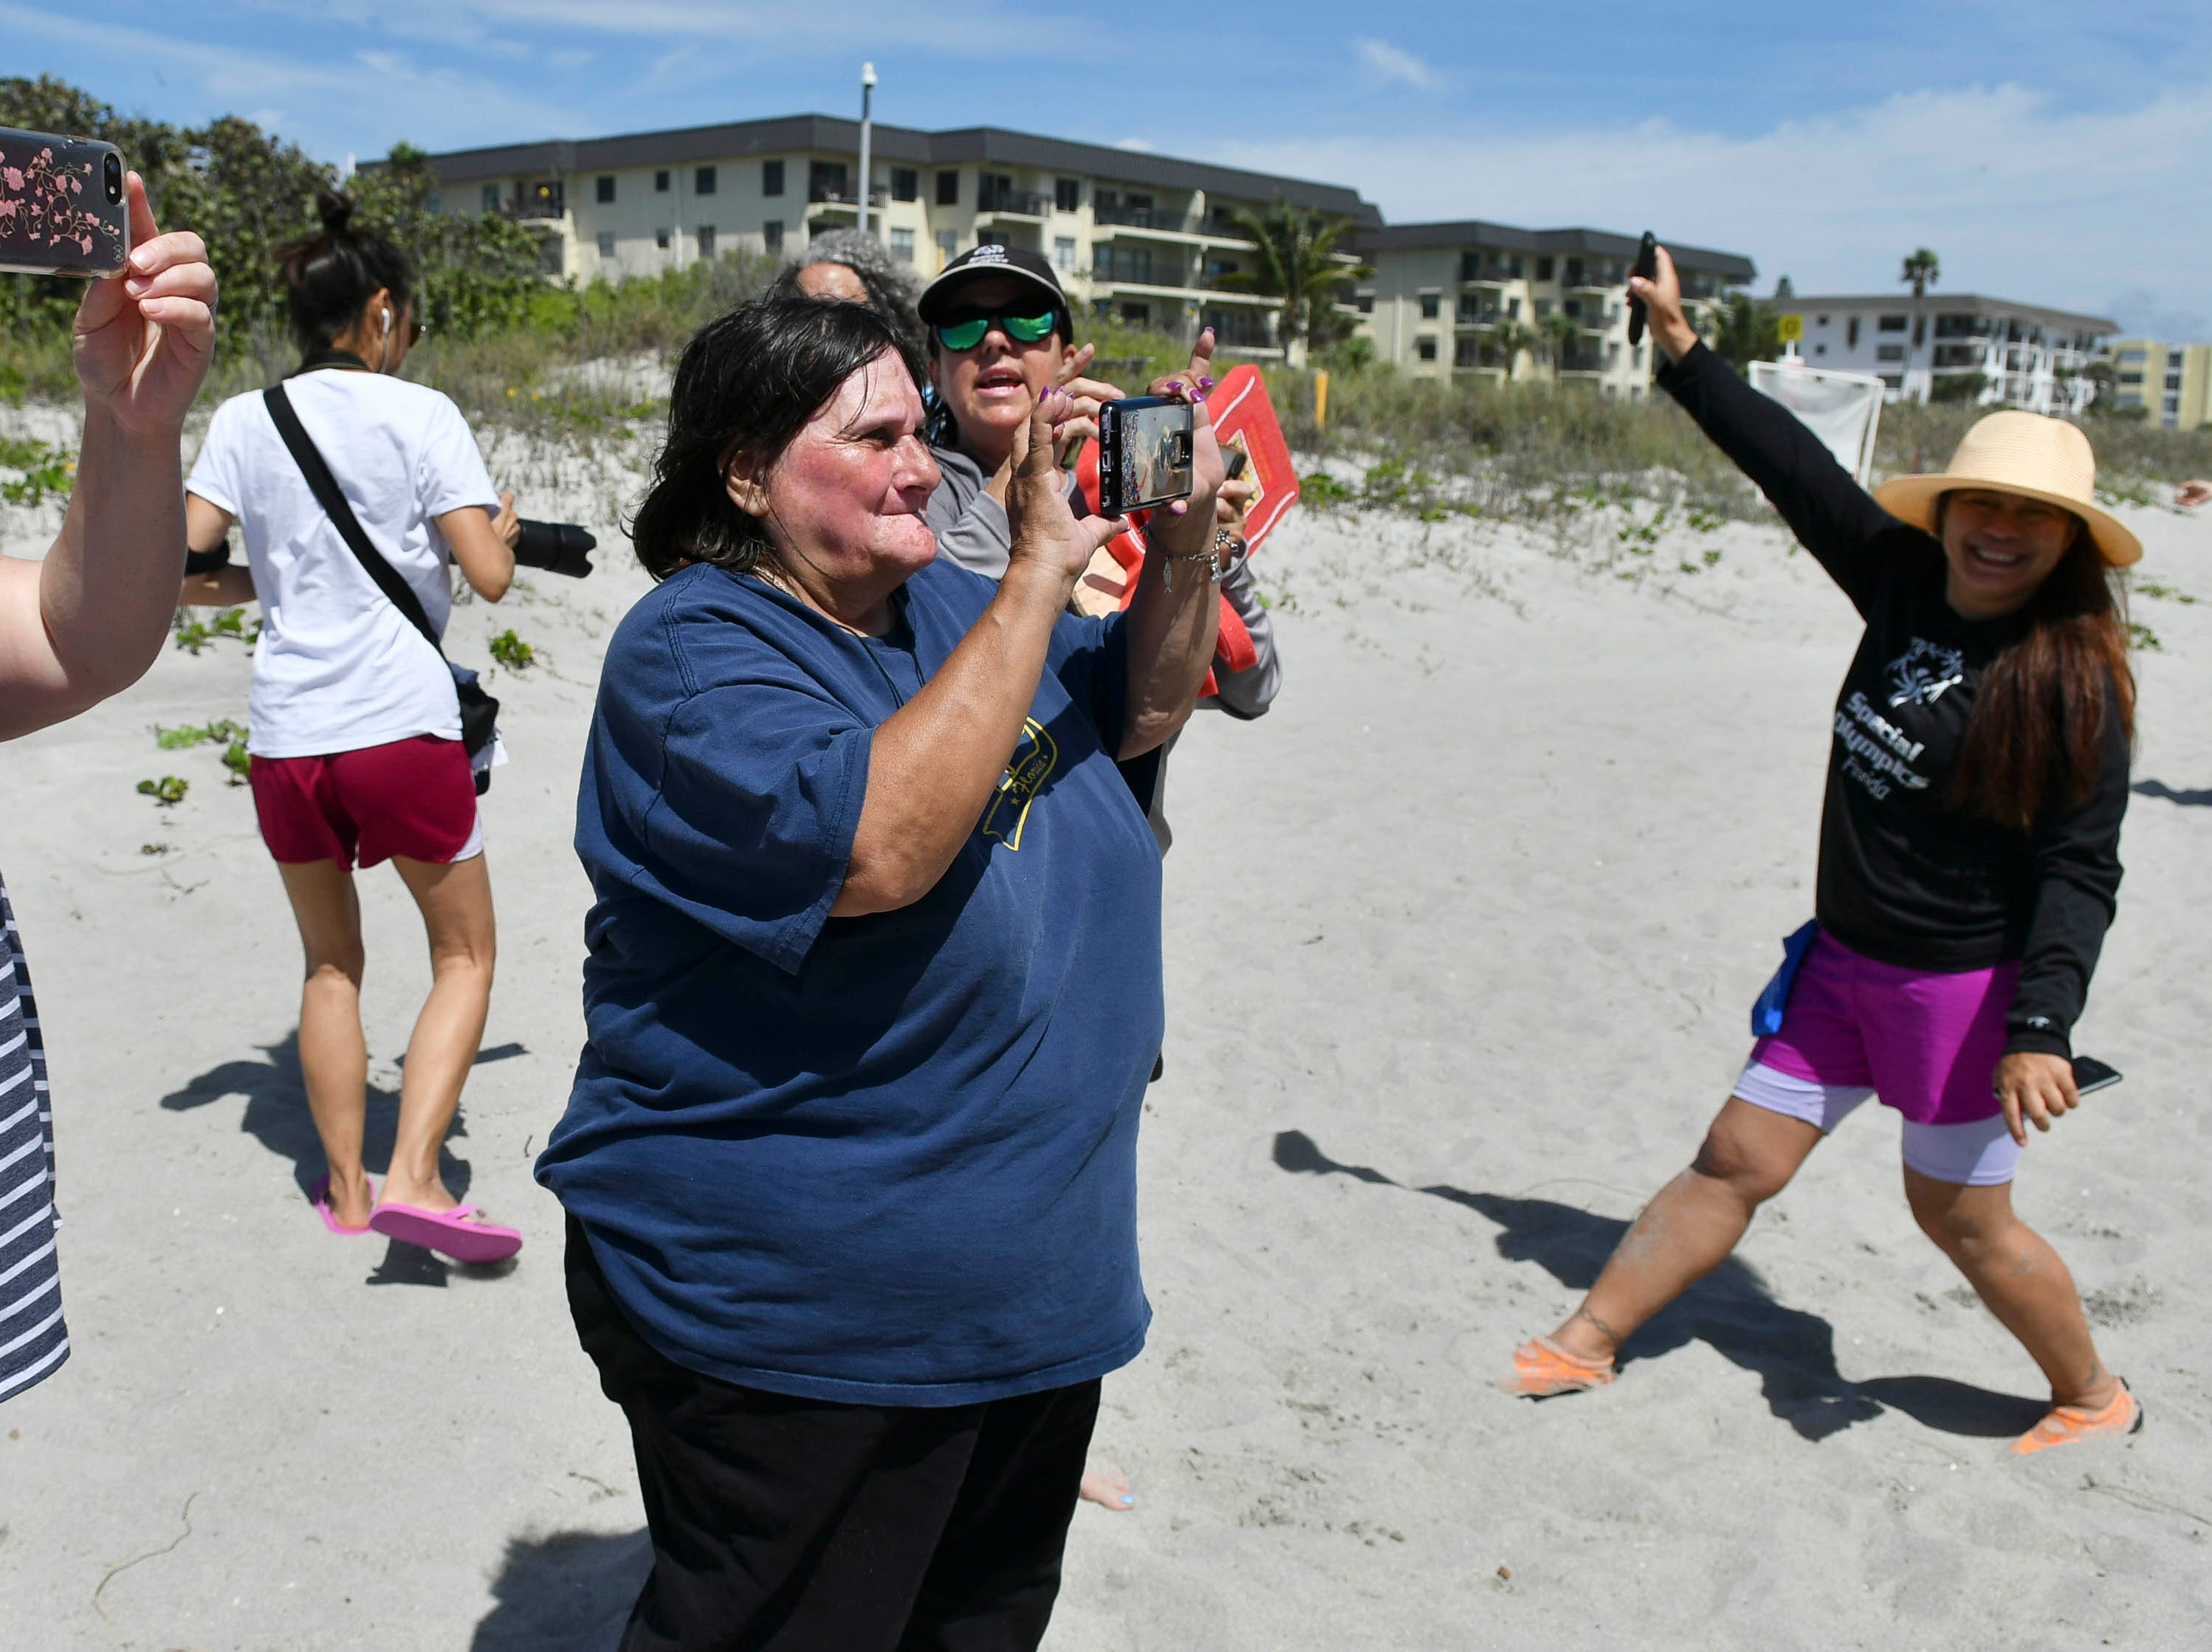 Parents and supporters take pictures during the medal presentation at the Special Olympic spring surfing festival.